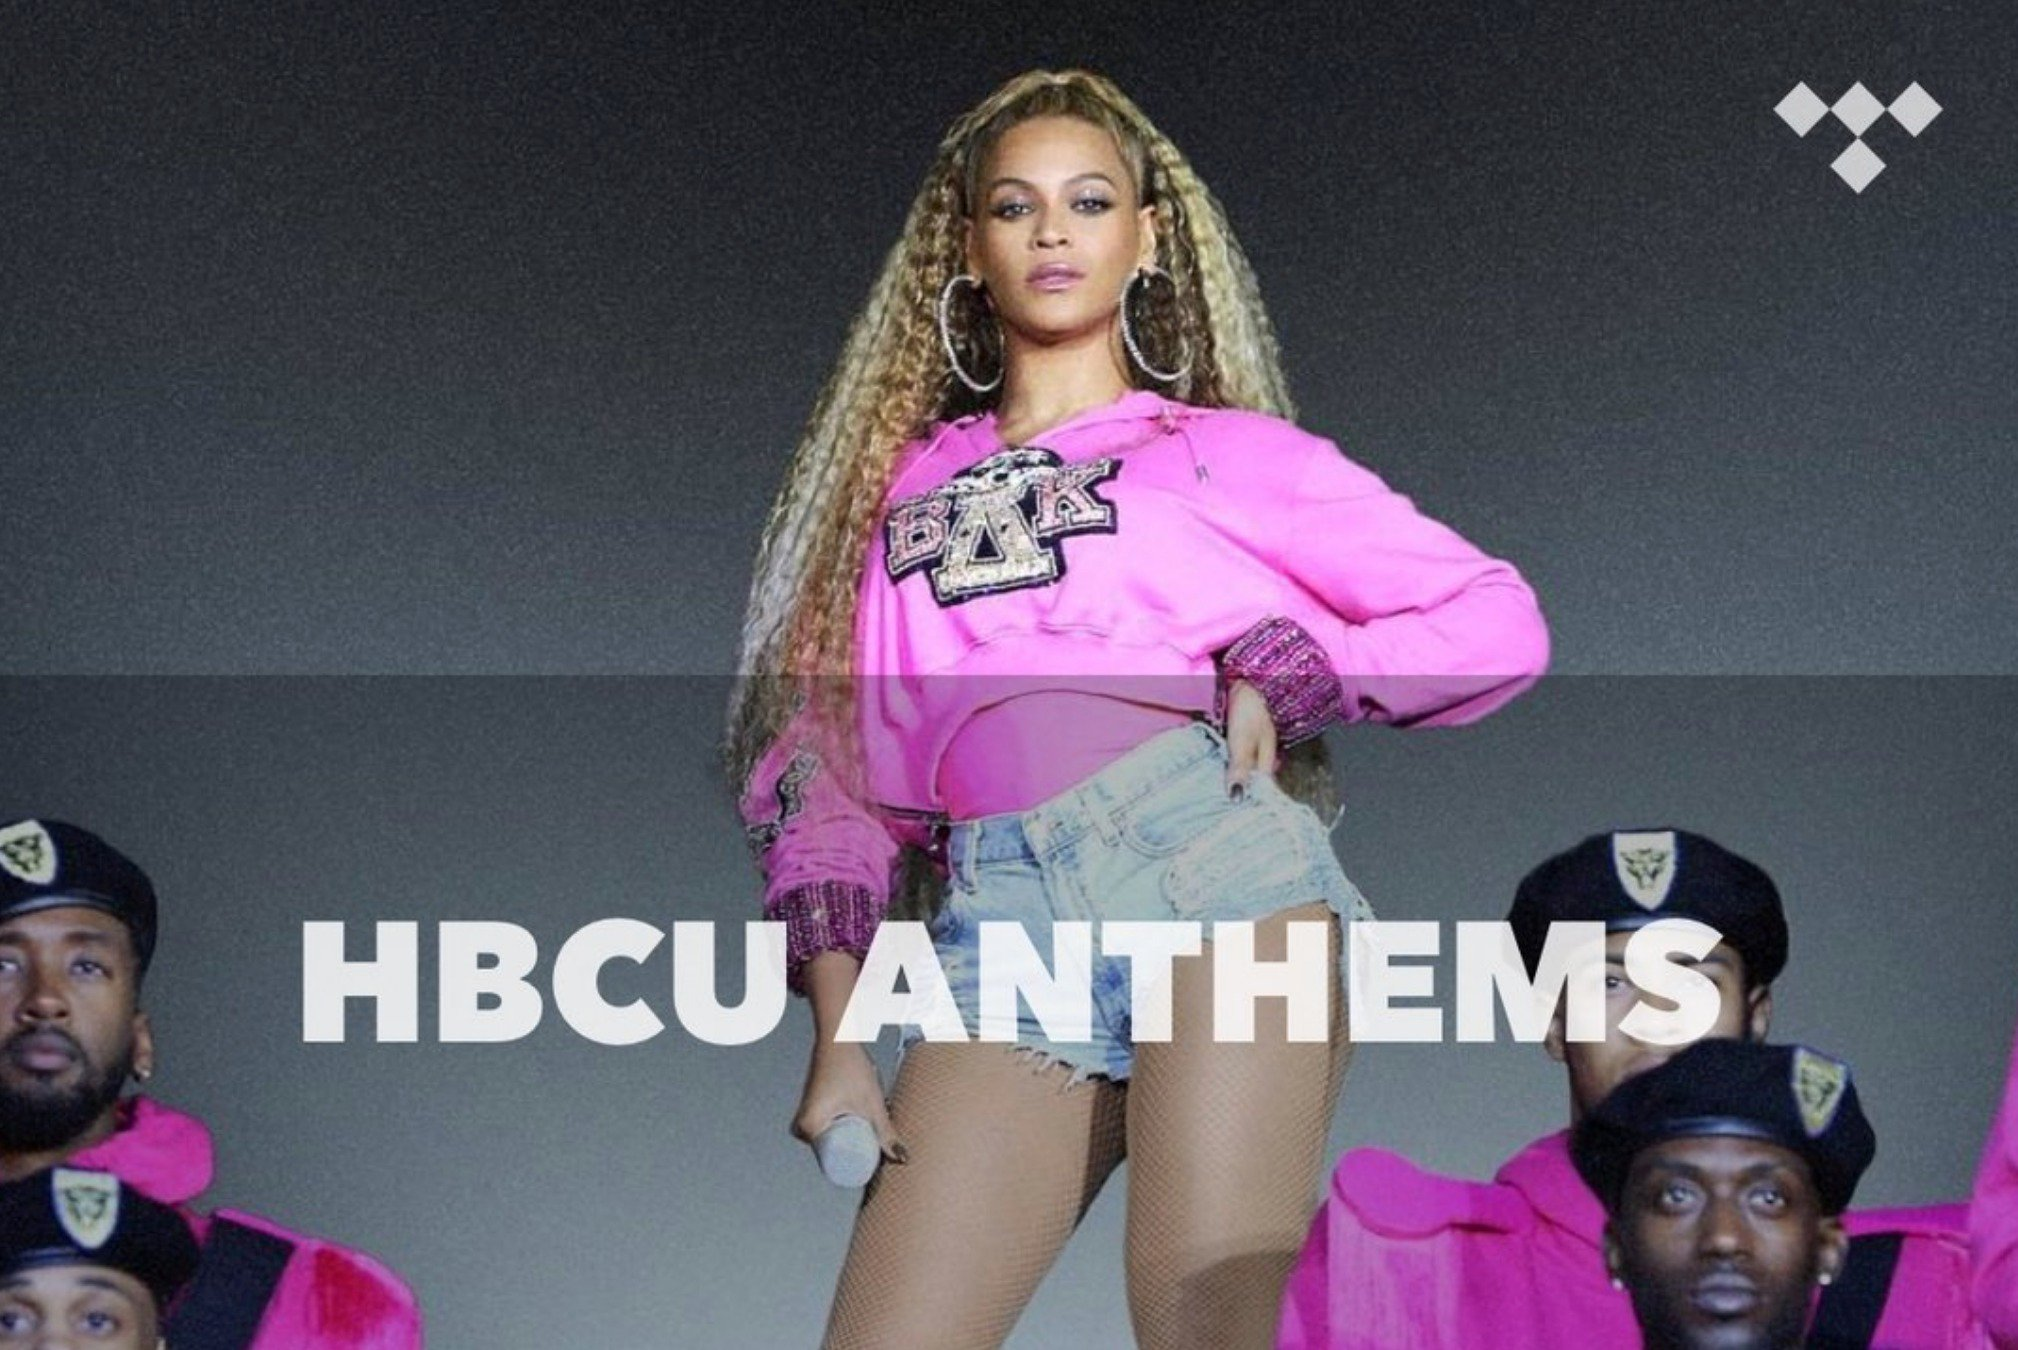 Classic playlist! HBCU Anthems https://t.co/W83ILdtvv1 #TIDAL https://t.co/R7MrzulVqK